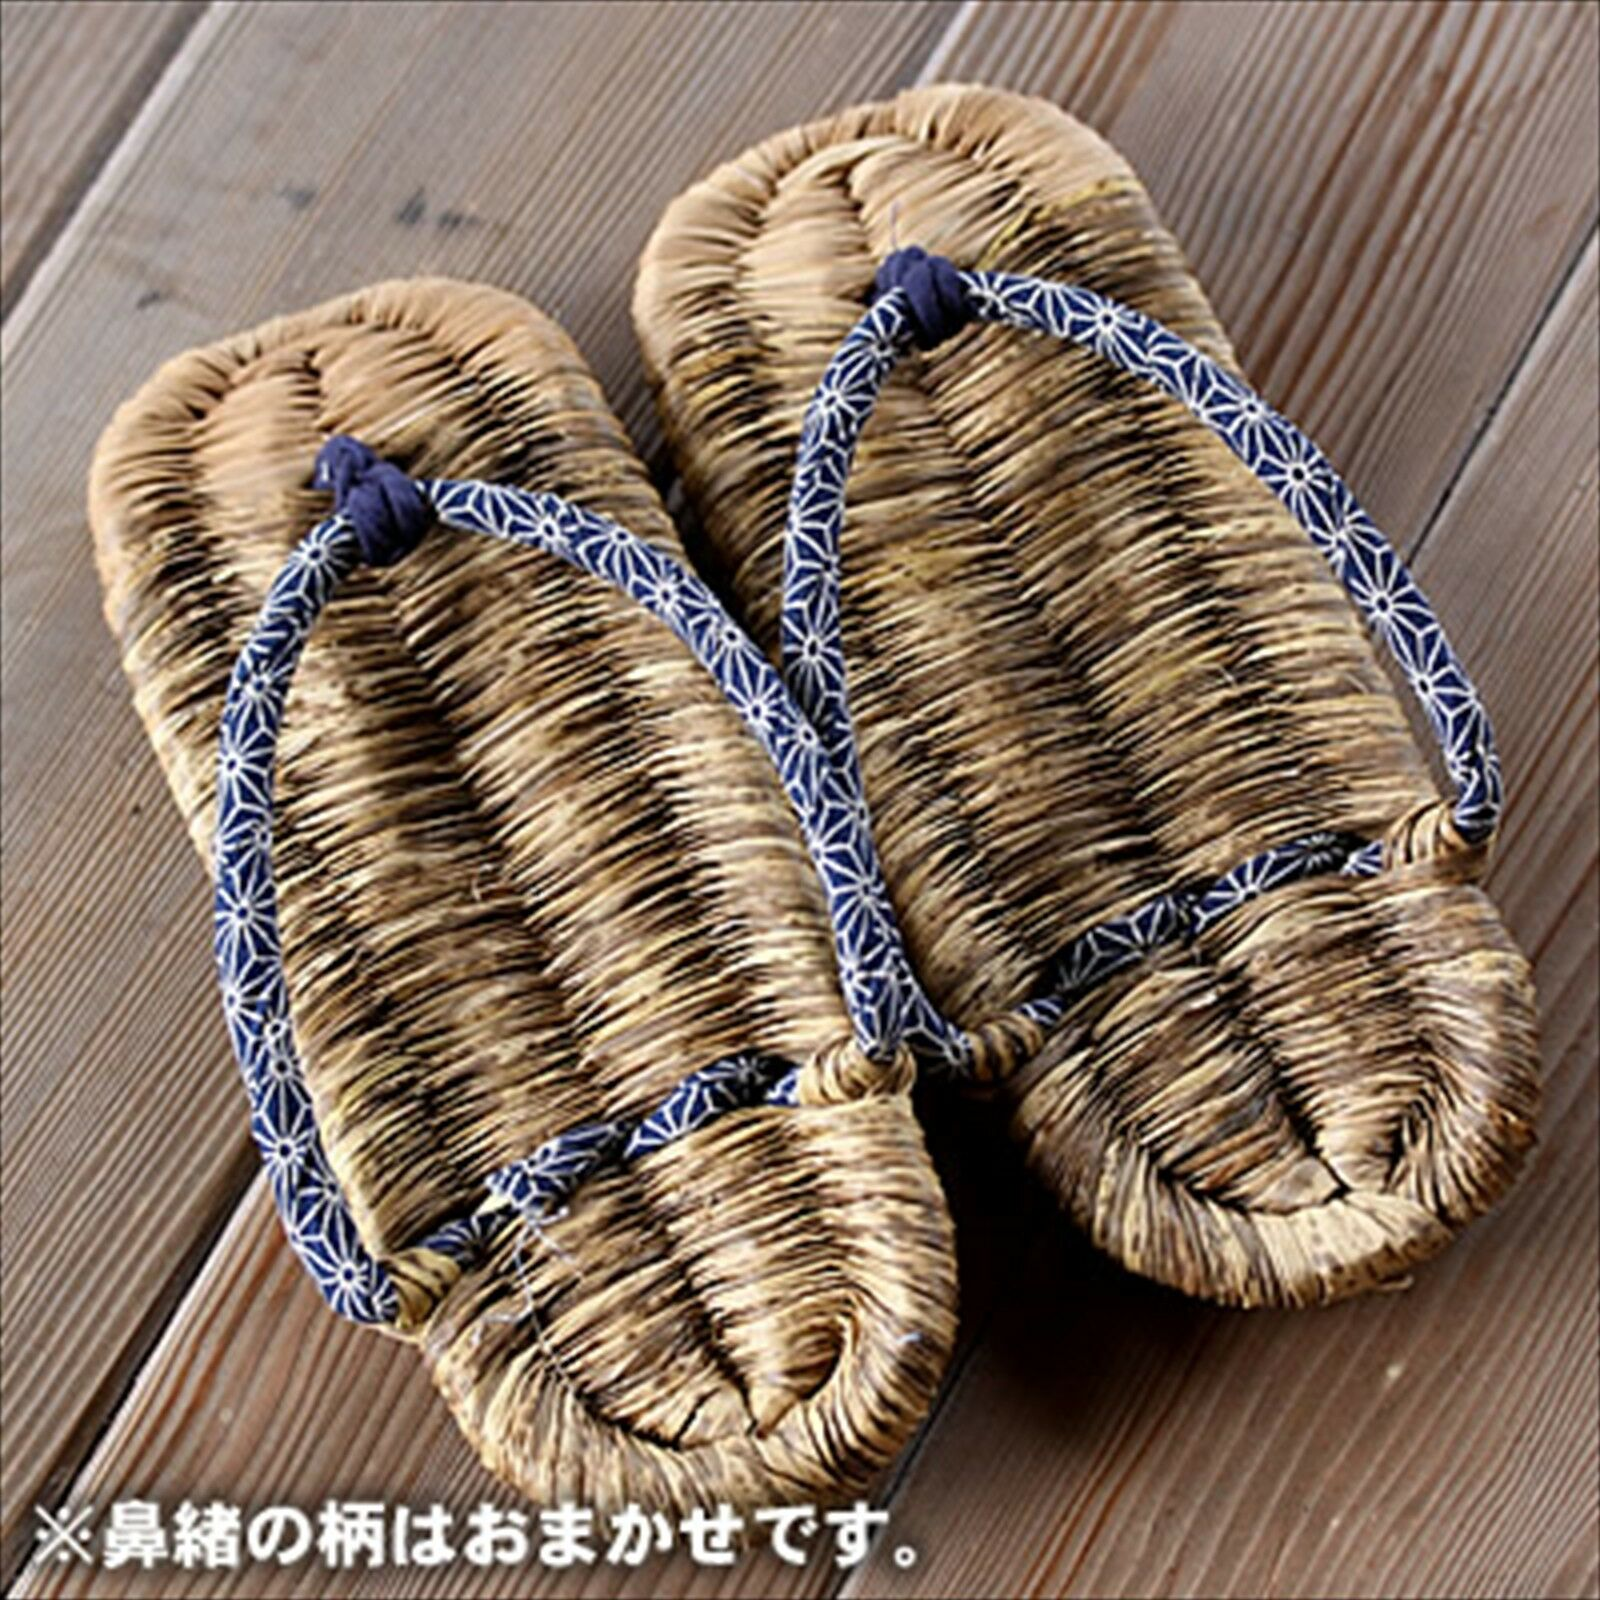 Japanese Traditional Bamboo Leather Sandals Zori Waraji Hand Made 26cm Mens